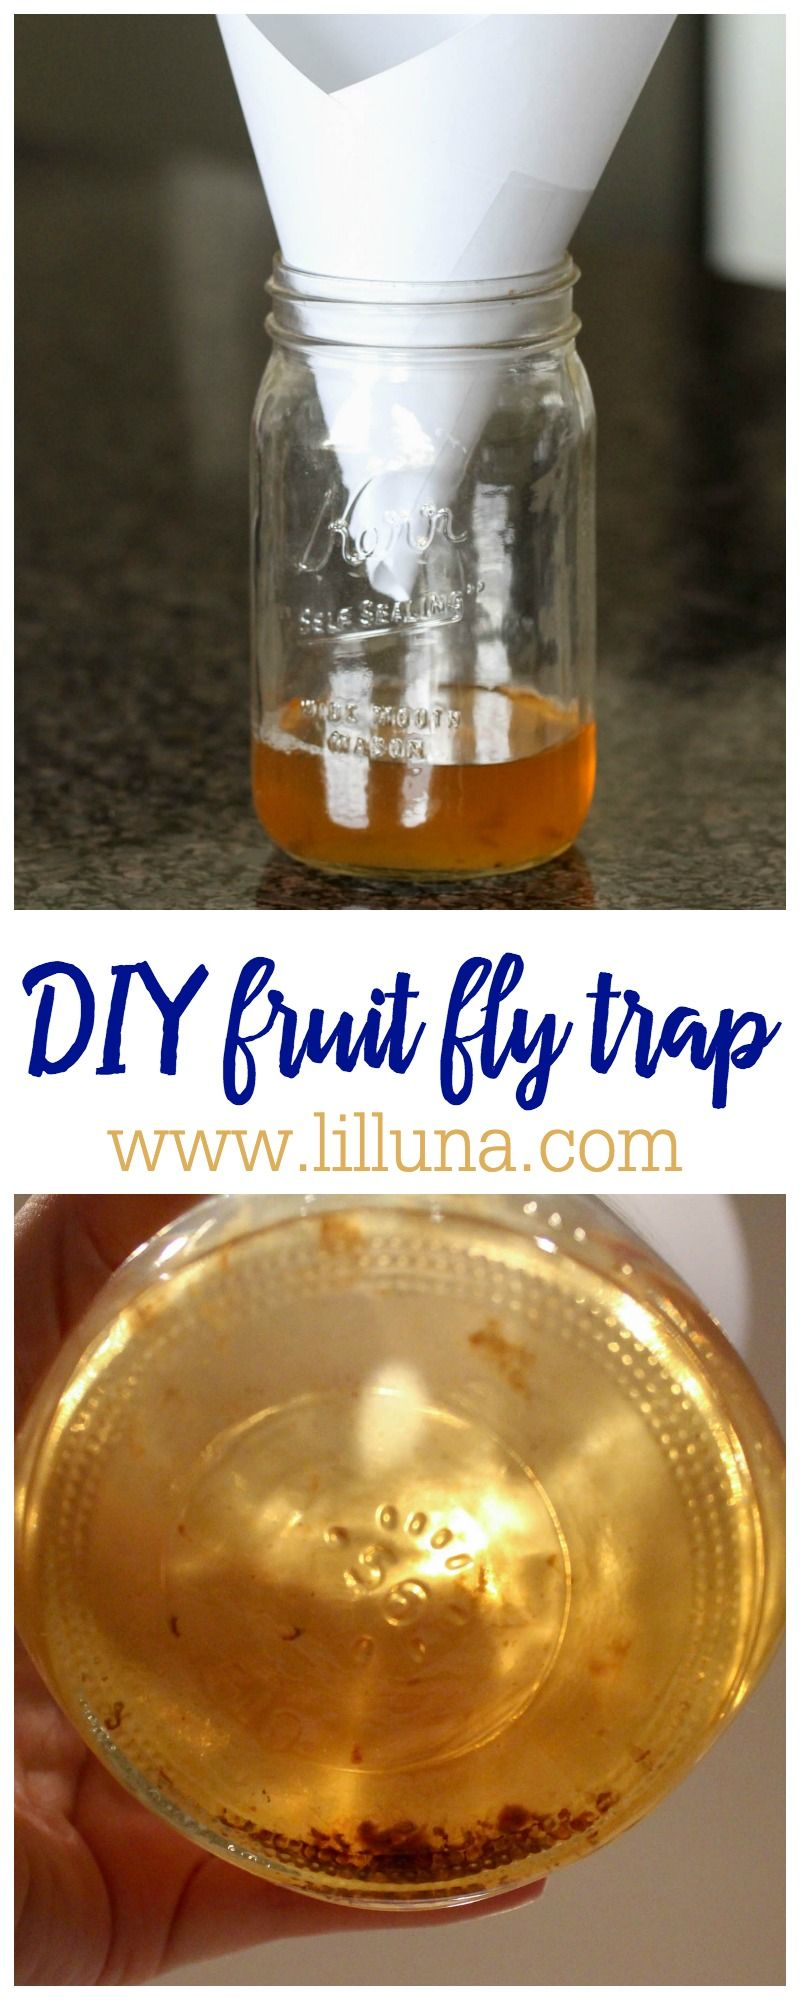 Homemade Fruit Fly Trap How to Get Rid of Fruit Flies